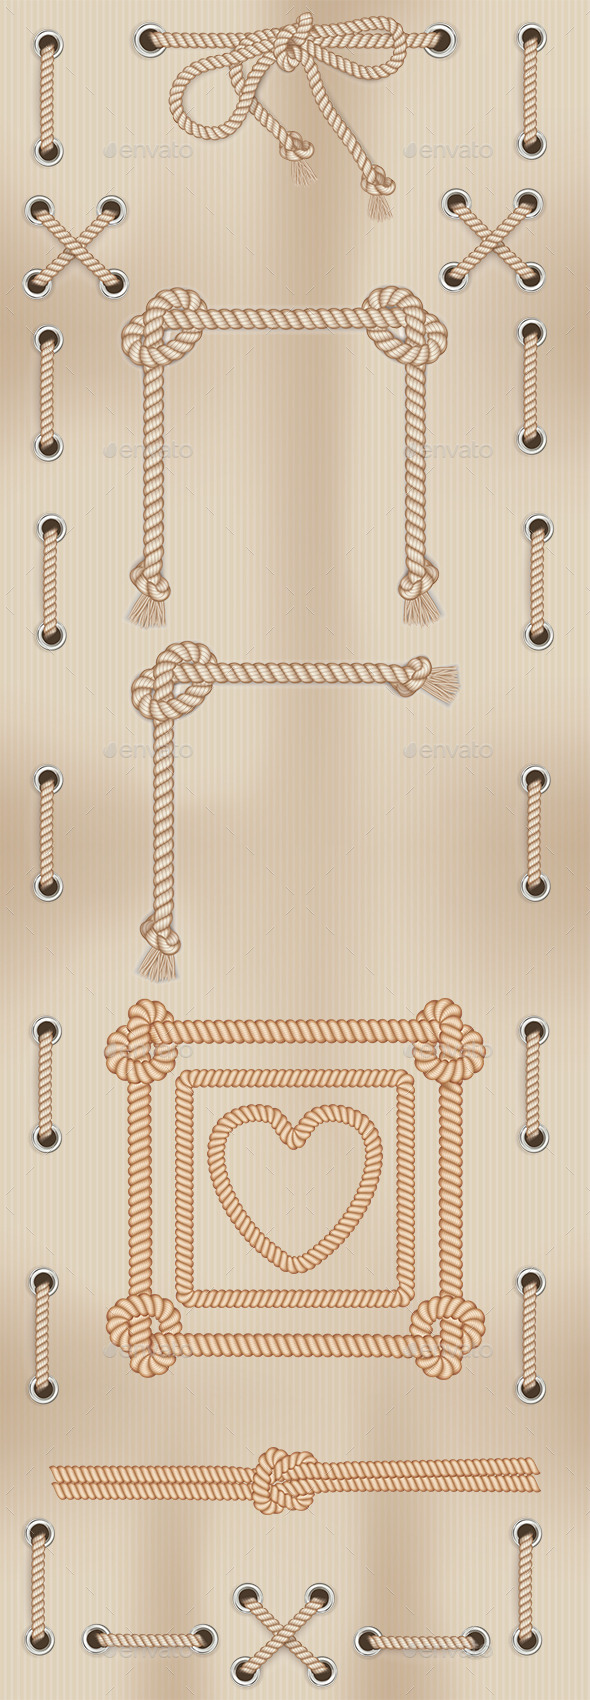 GraphicRiver Frames Made From Rope 11773816